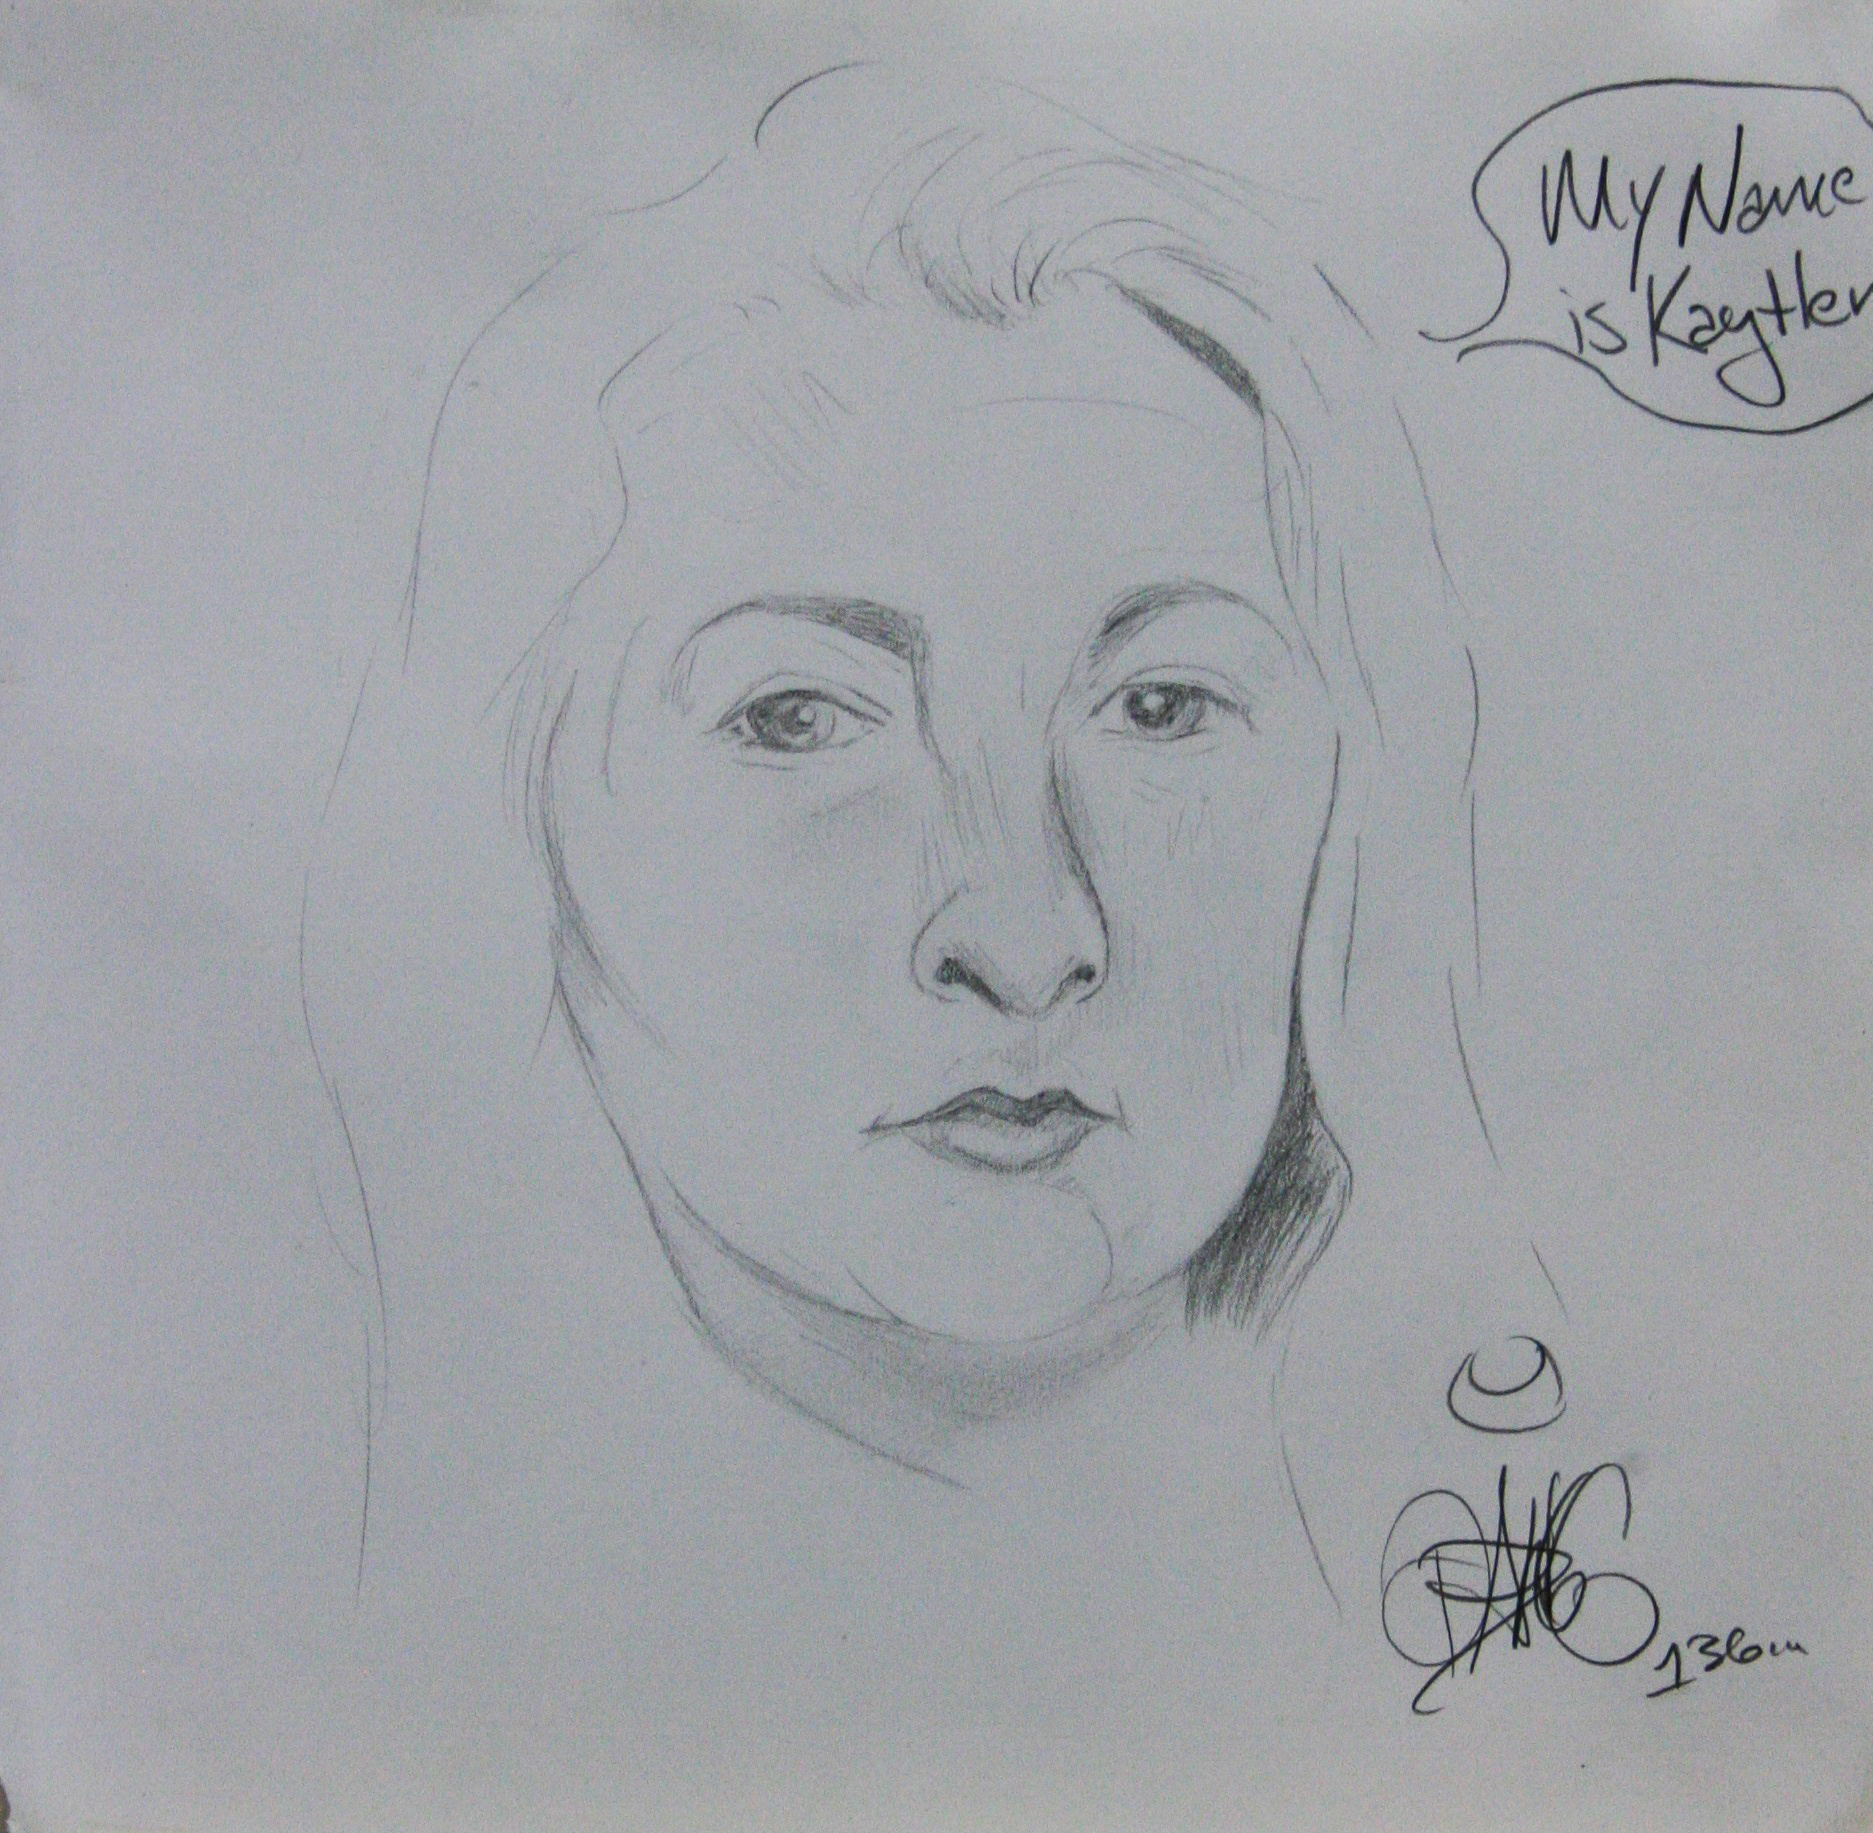 Meagan Cockley did this hour drawing .